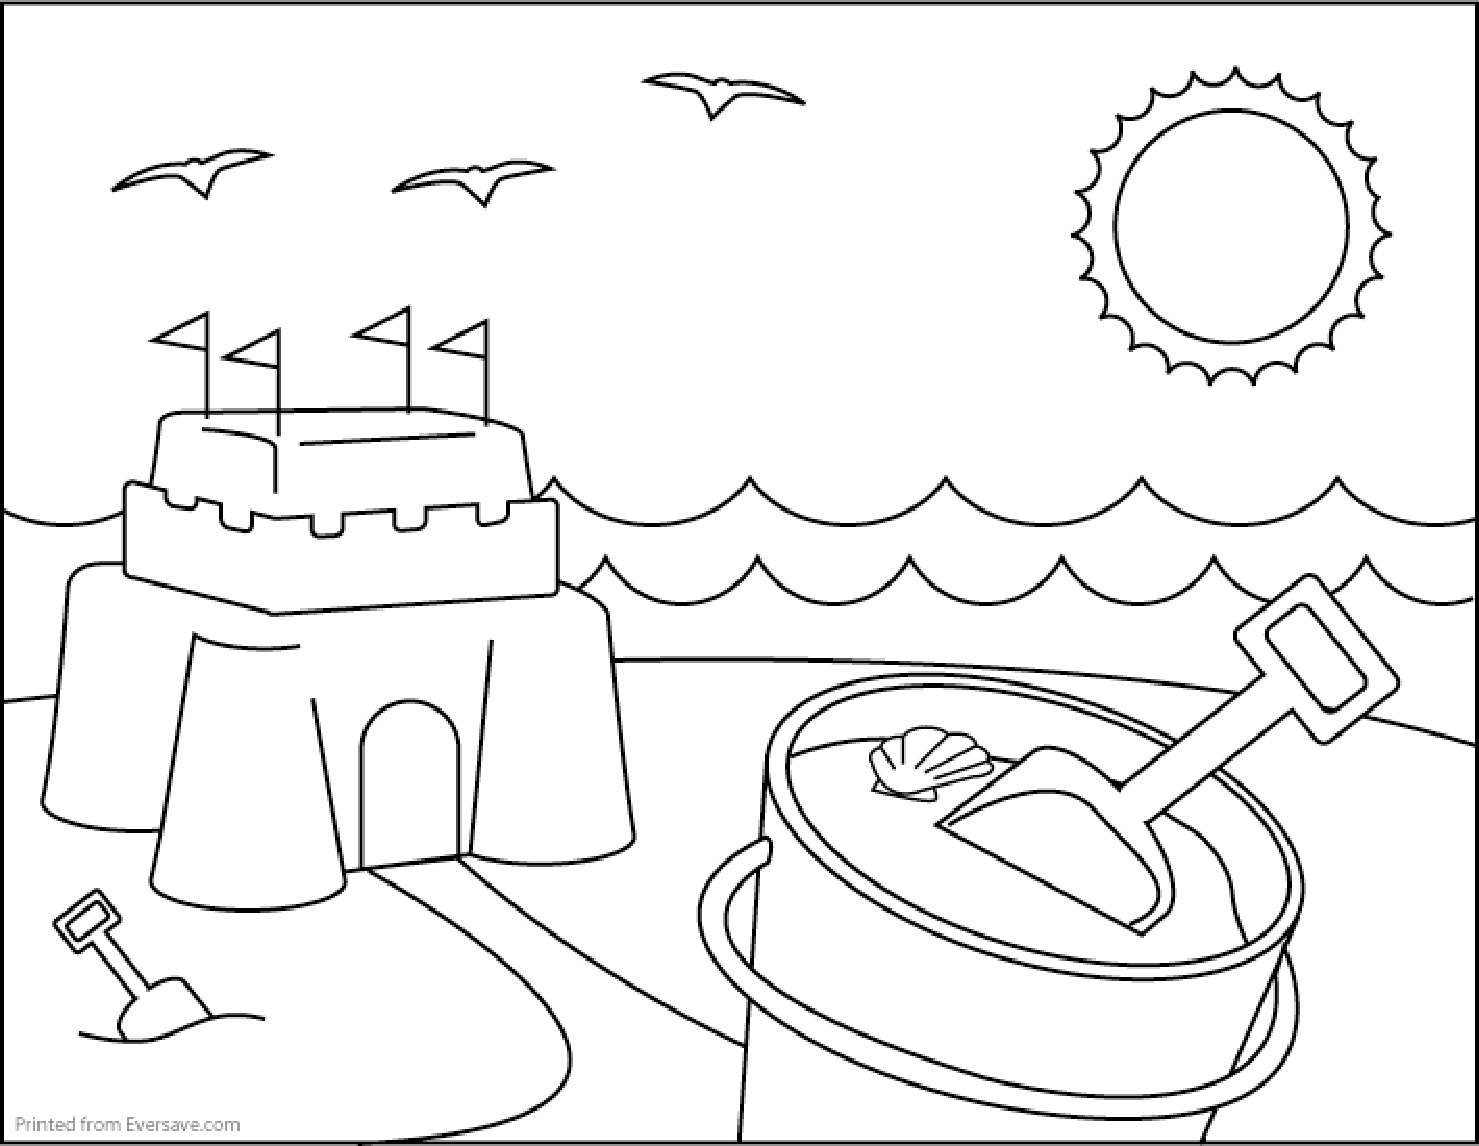 Nick jr summer coloring pages - Nick Jr Summer Coloring Pages 36